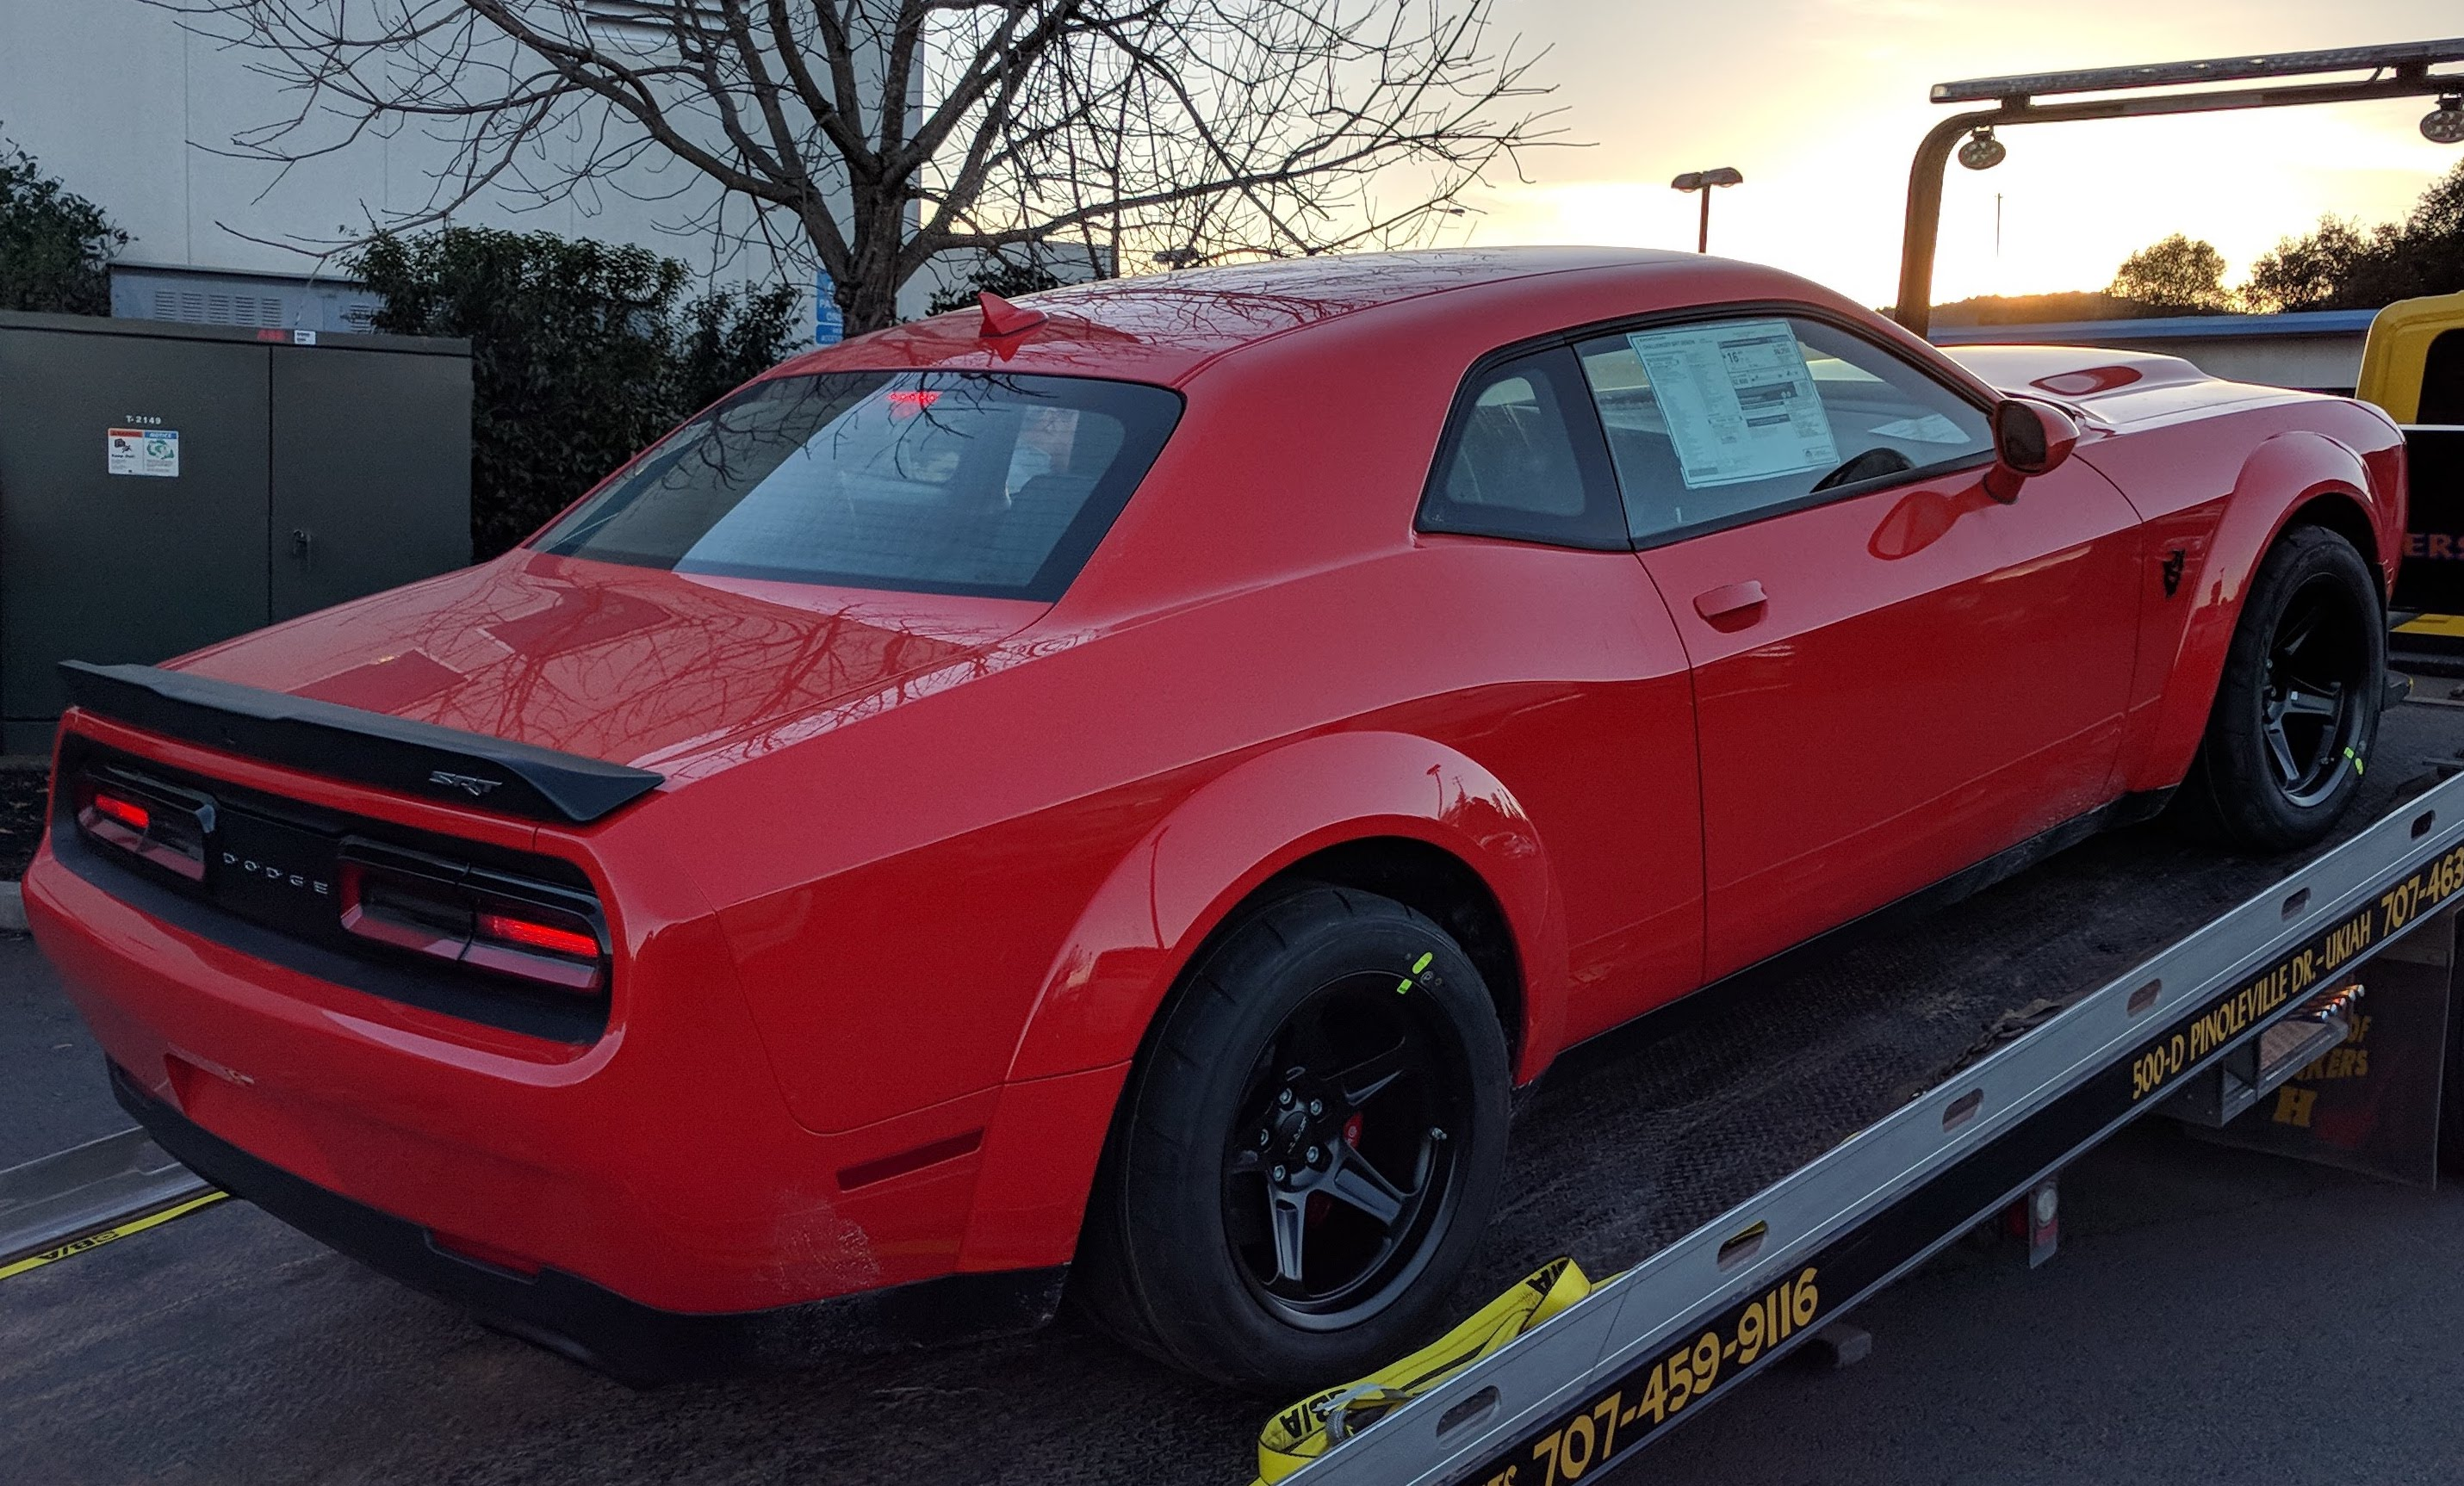 New Dodge SRT Challenger Demon rolling of the delivery truck. Straight from the factory.